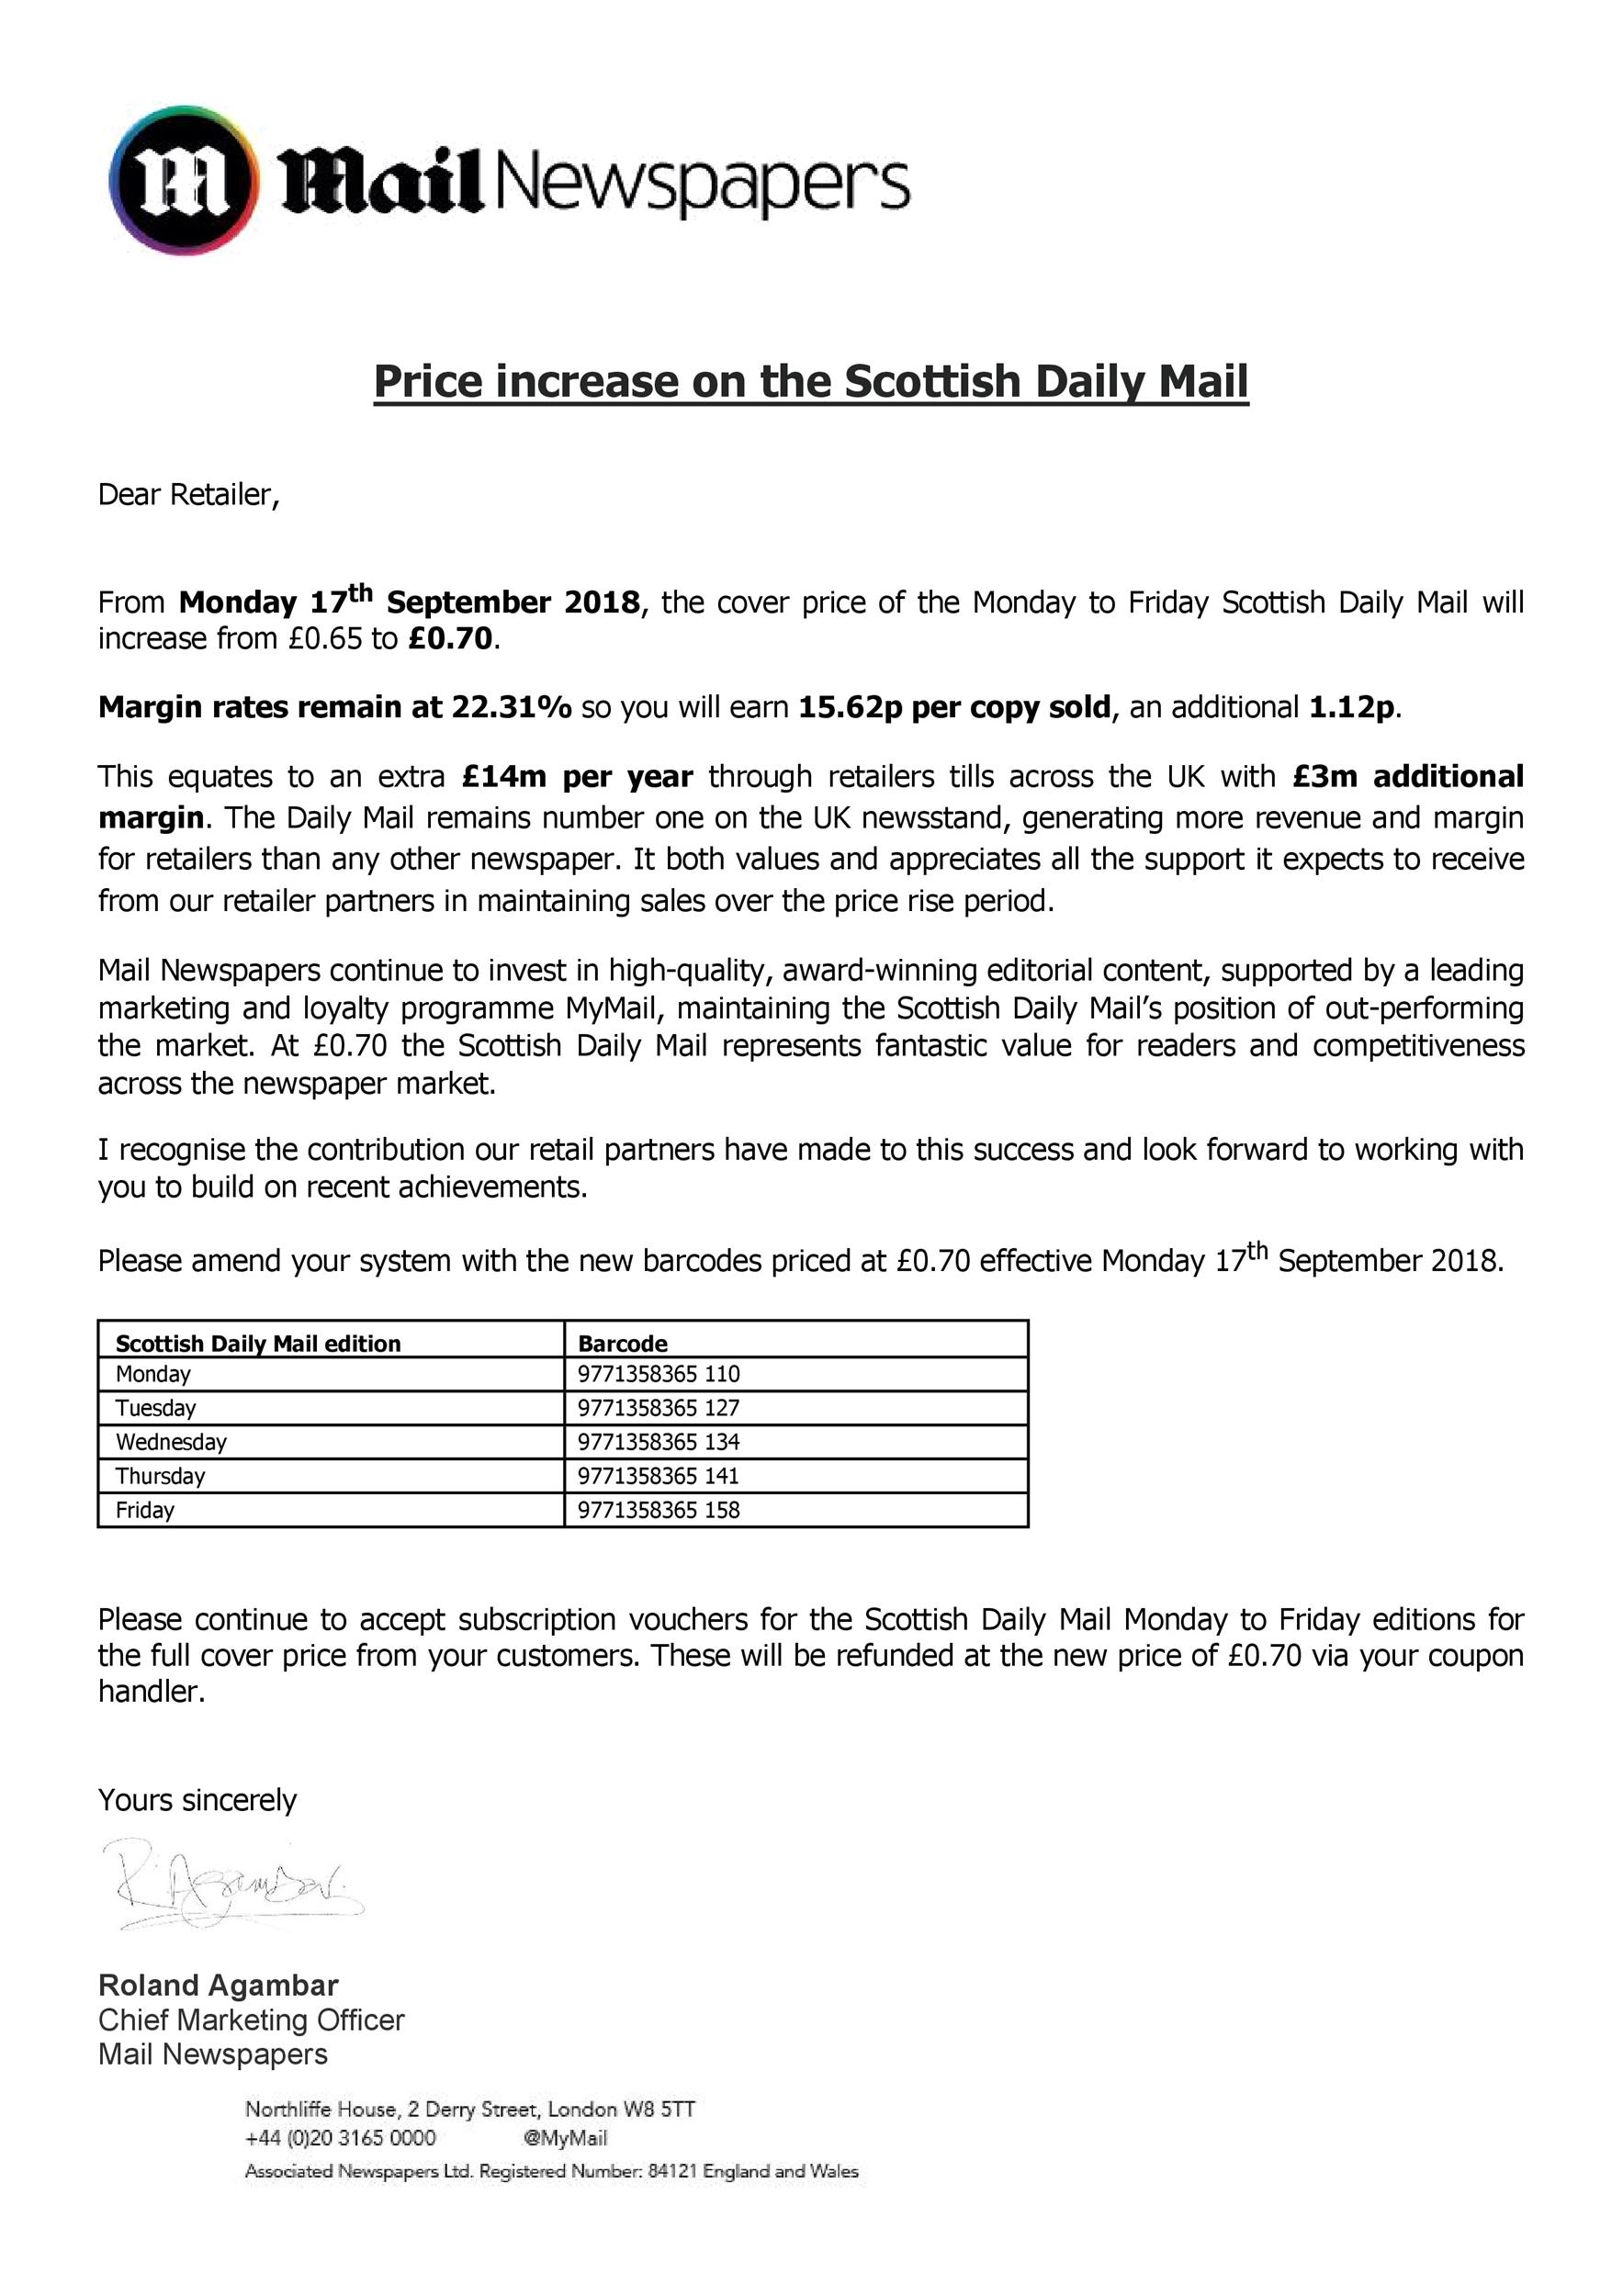 Free price increase letter 38